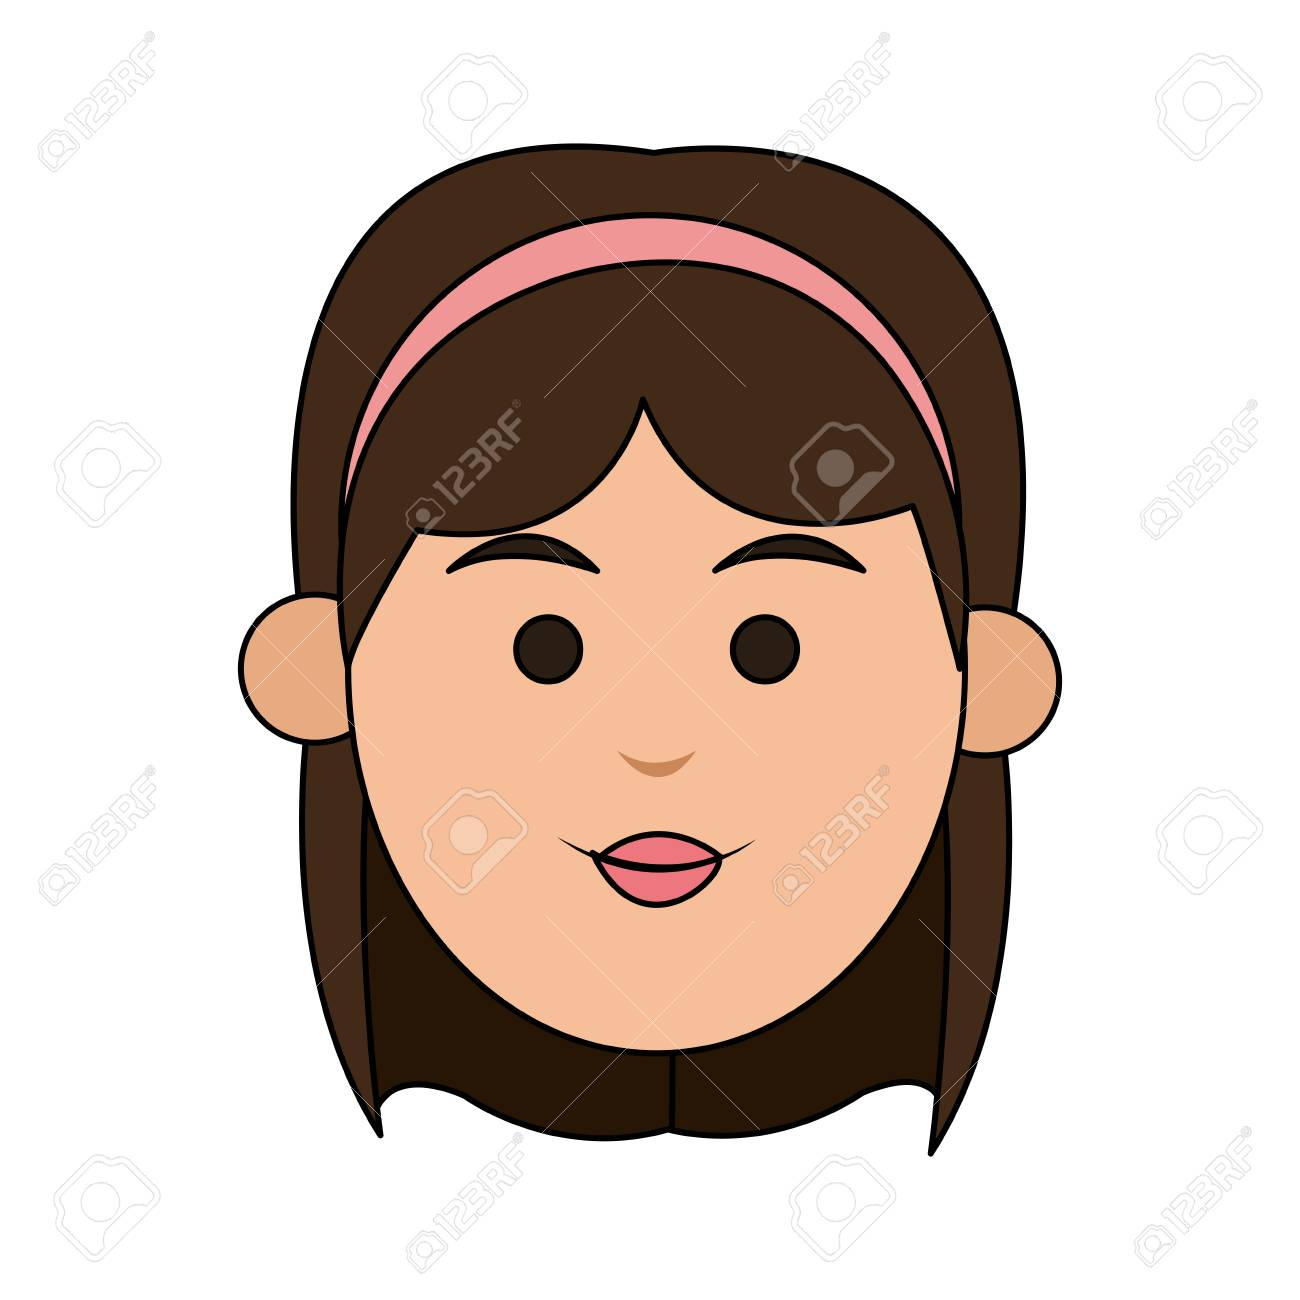 Young Woman With Short Hair And Headband Icon Image Vector